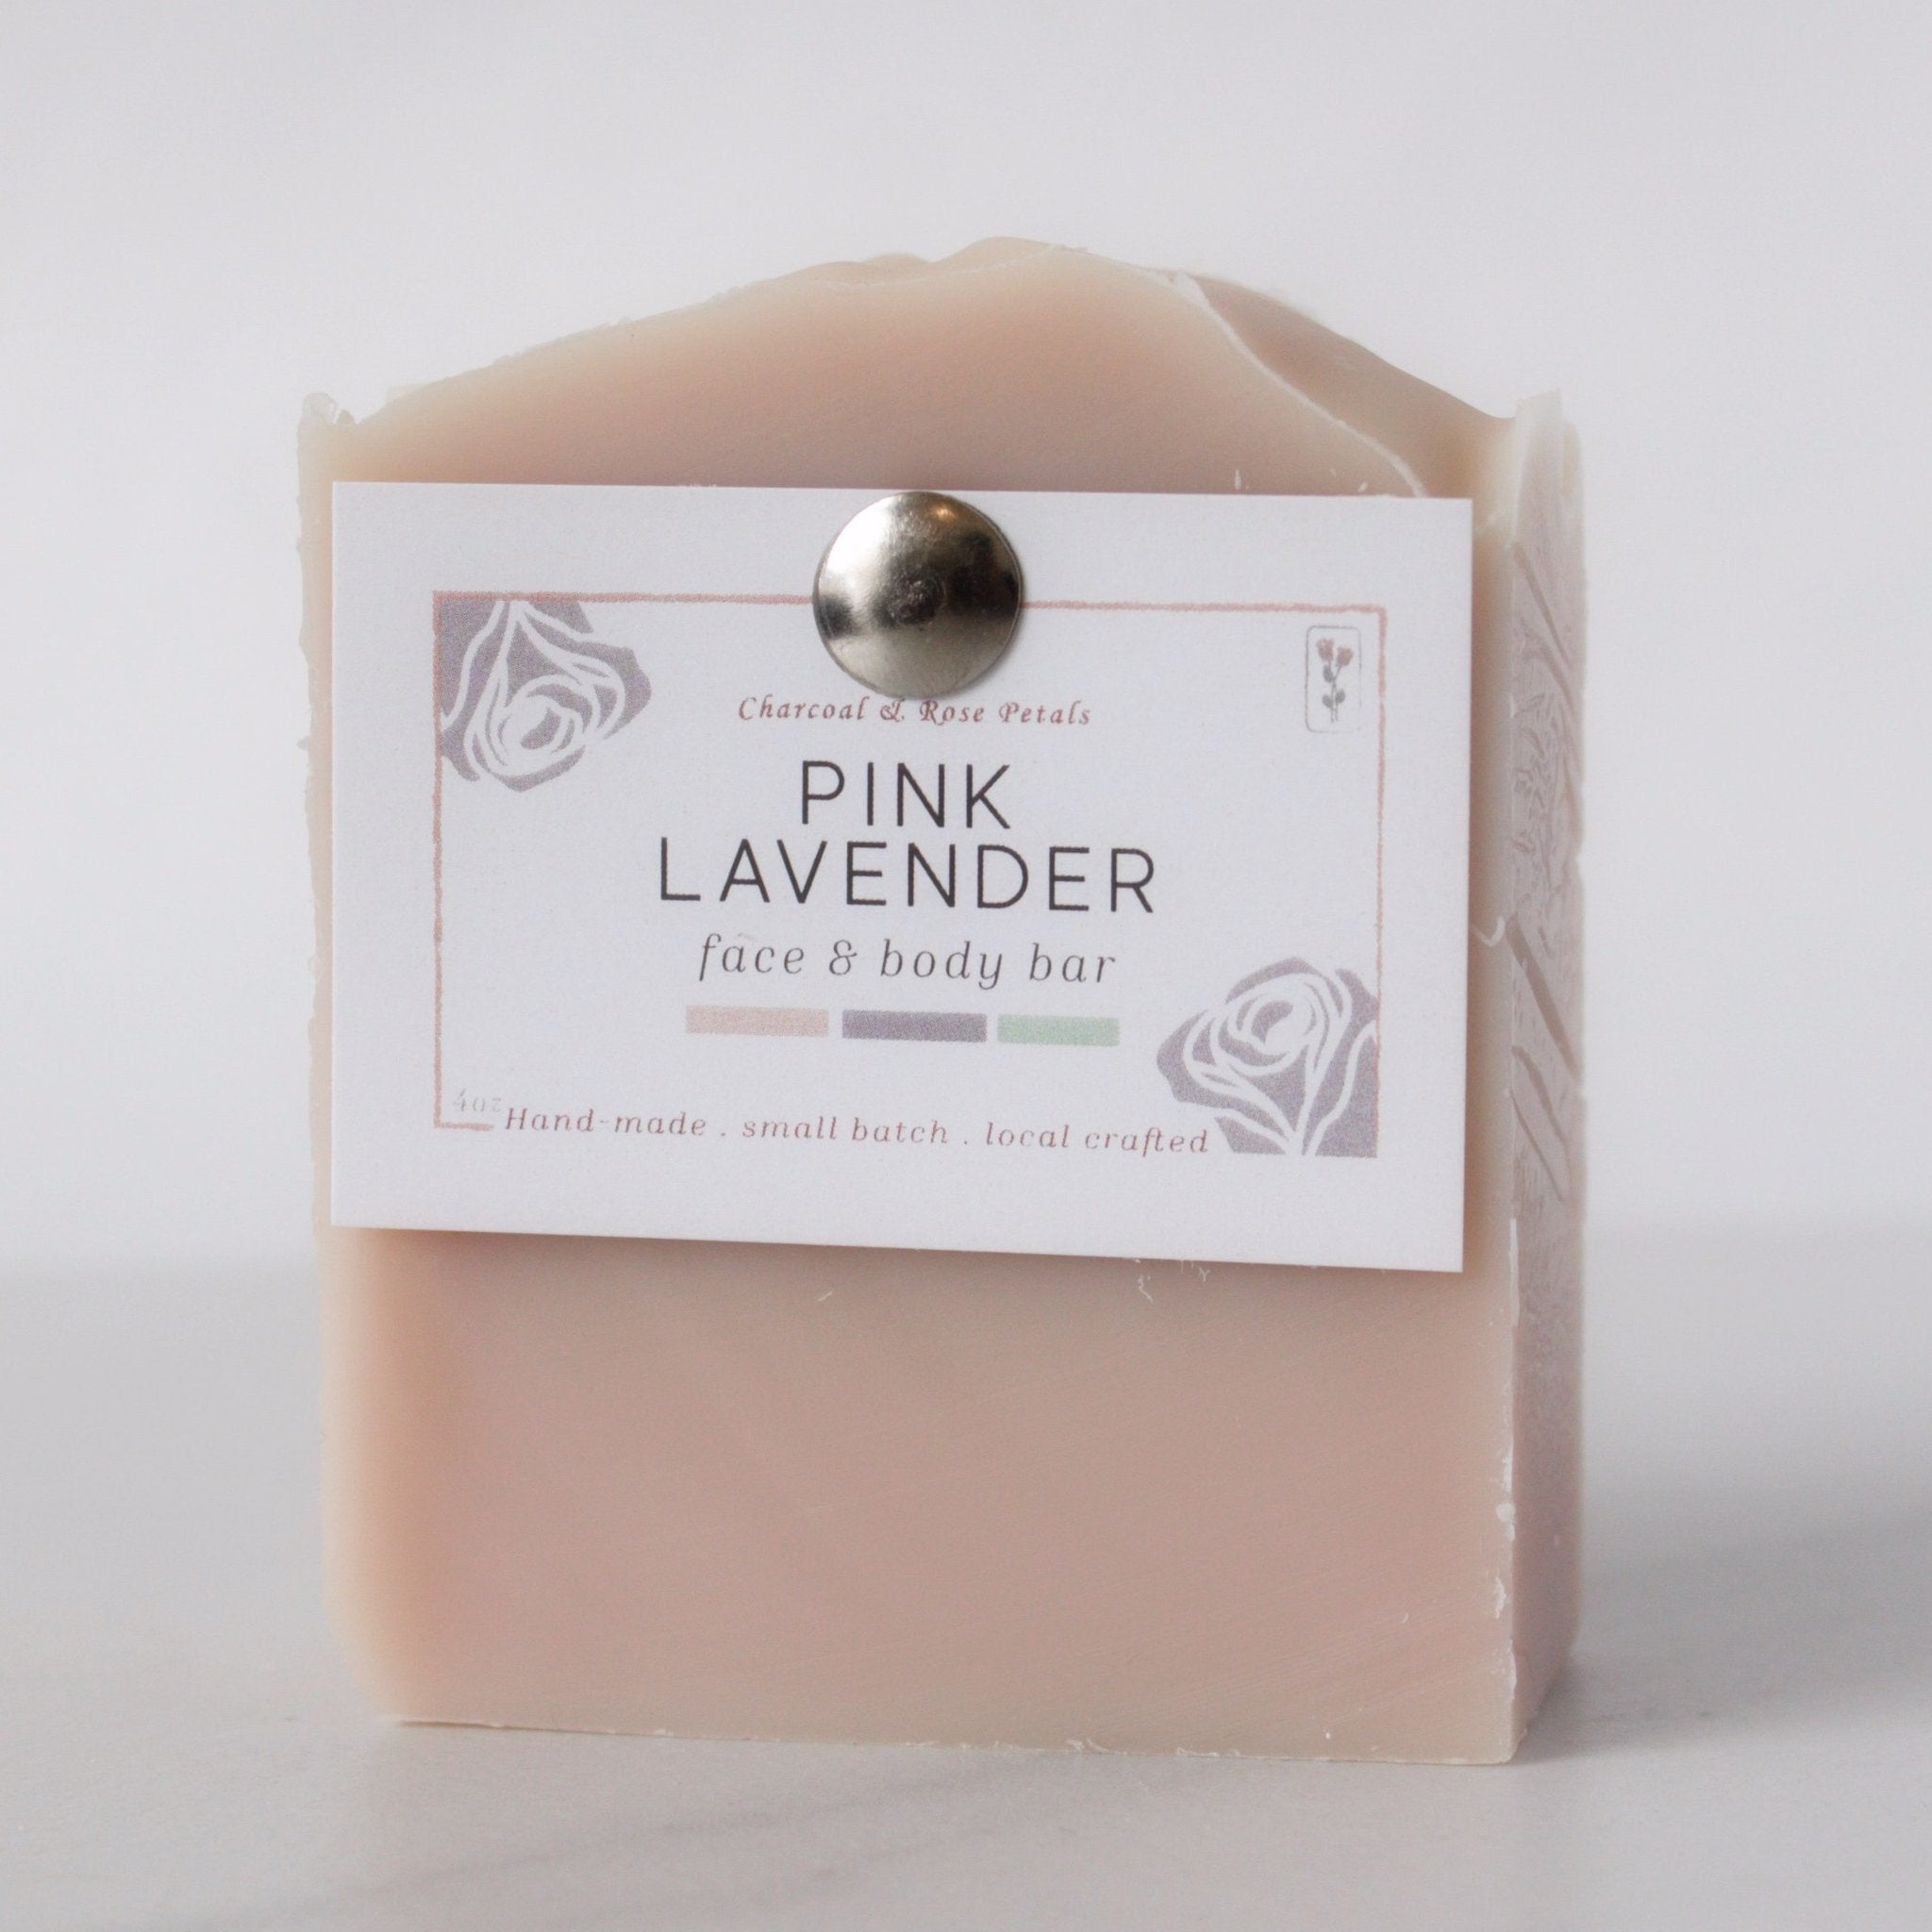 Pink Lavender Face & Body Bar | Charcoal & Rose Petals